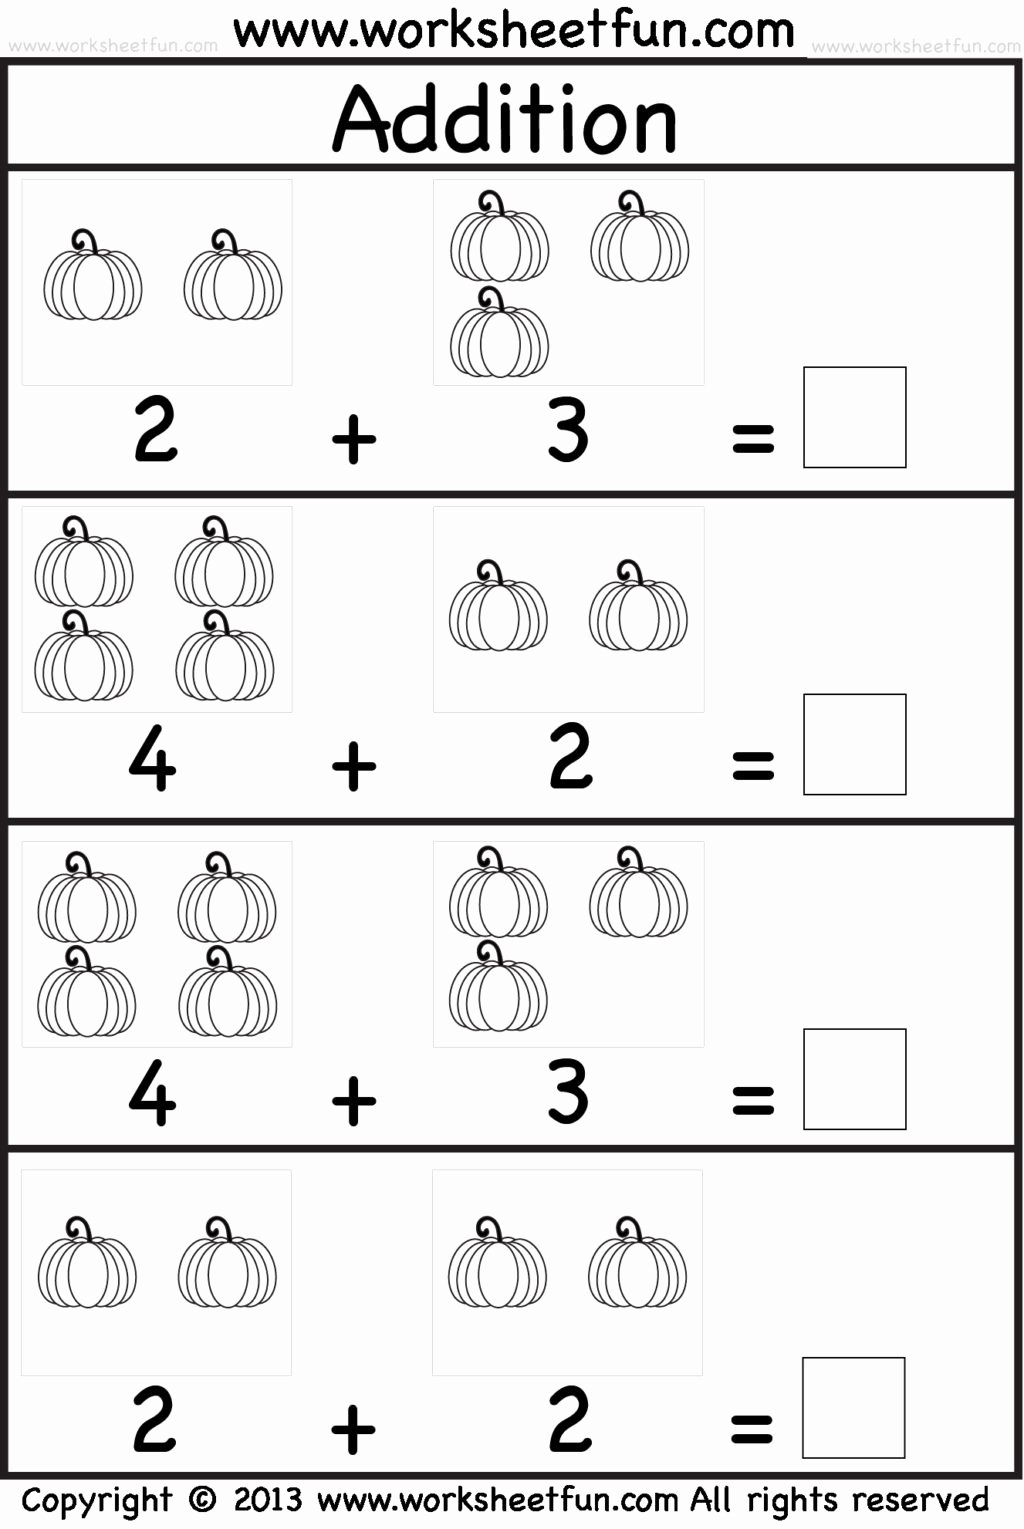 Free Printable Math Worksheets for Preschoolers Inspirational Worksheet Math Worksheets Preschool Free Printable